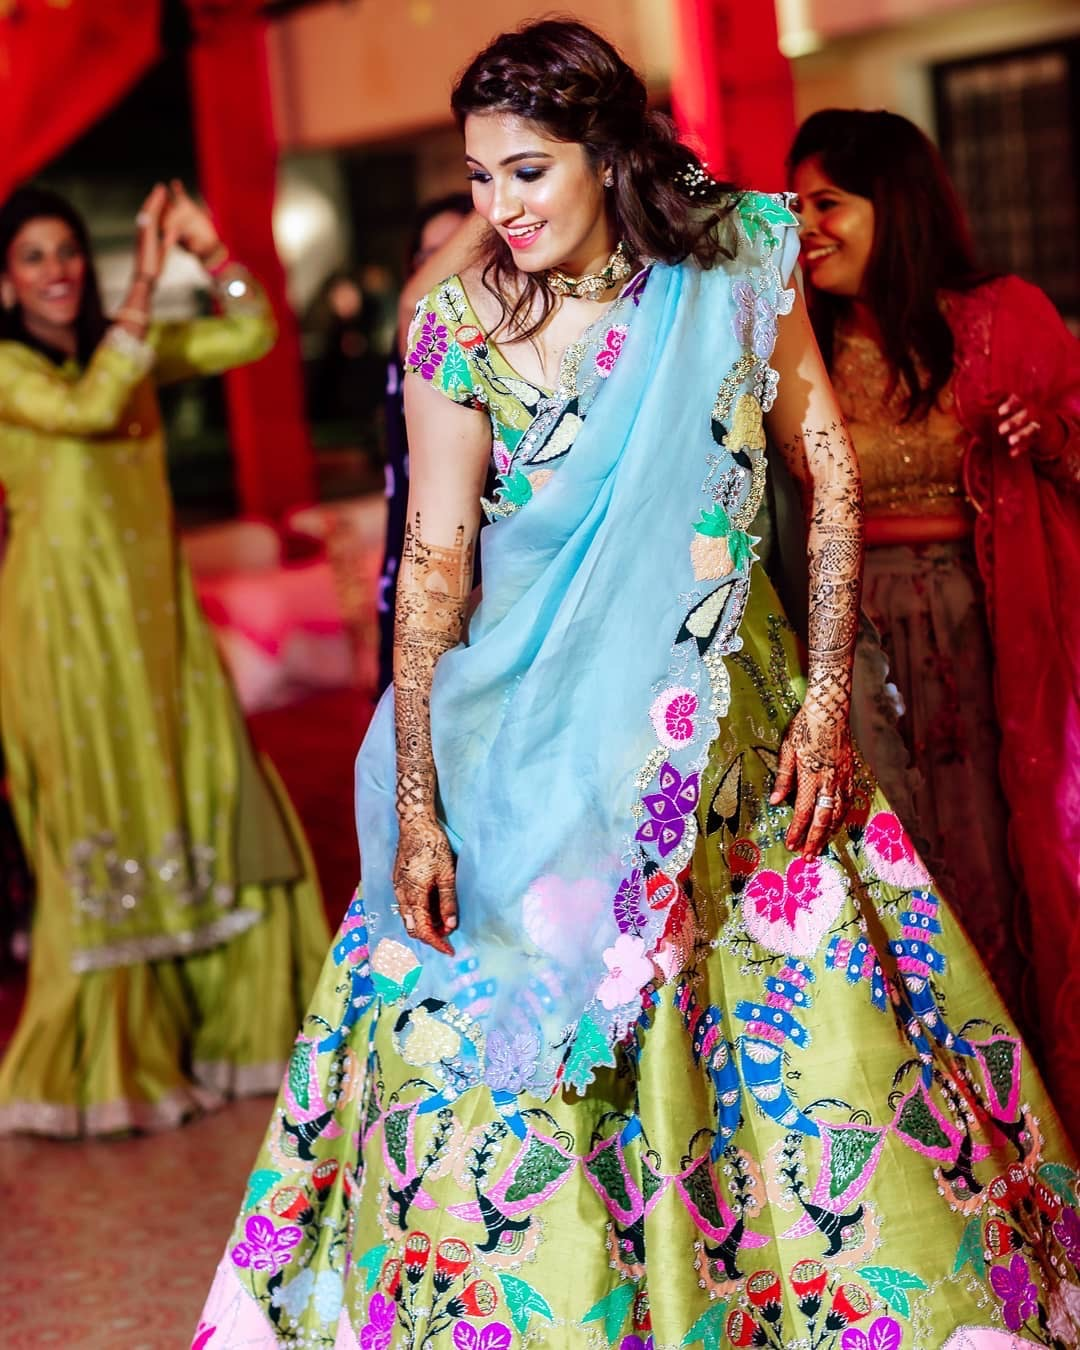 mehendi designs | colourful mehendi outfits | bridal mehendi lehenga |mehendi hairstyles | sania mirza and anam mirza | anam mirza wedding | anam mirza mehendi | mehendi outfit | bridal mehendi outfit | celebrity weddings indian bride | polki dimond | bridal makeup for Indian brides | bridal outfit | designer brides | indian celeb wedding | #celebrity #indianceleb #celebwedding #polkidiamond #polkinecklace #anammirzawedding | anam mirza wedding | babys breath hairstyle | # mehendi #bridallehenga #wittyvows #bridesofwittyvows #mehendidesigns #celebritymehendi #babysbreath